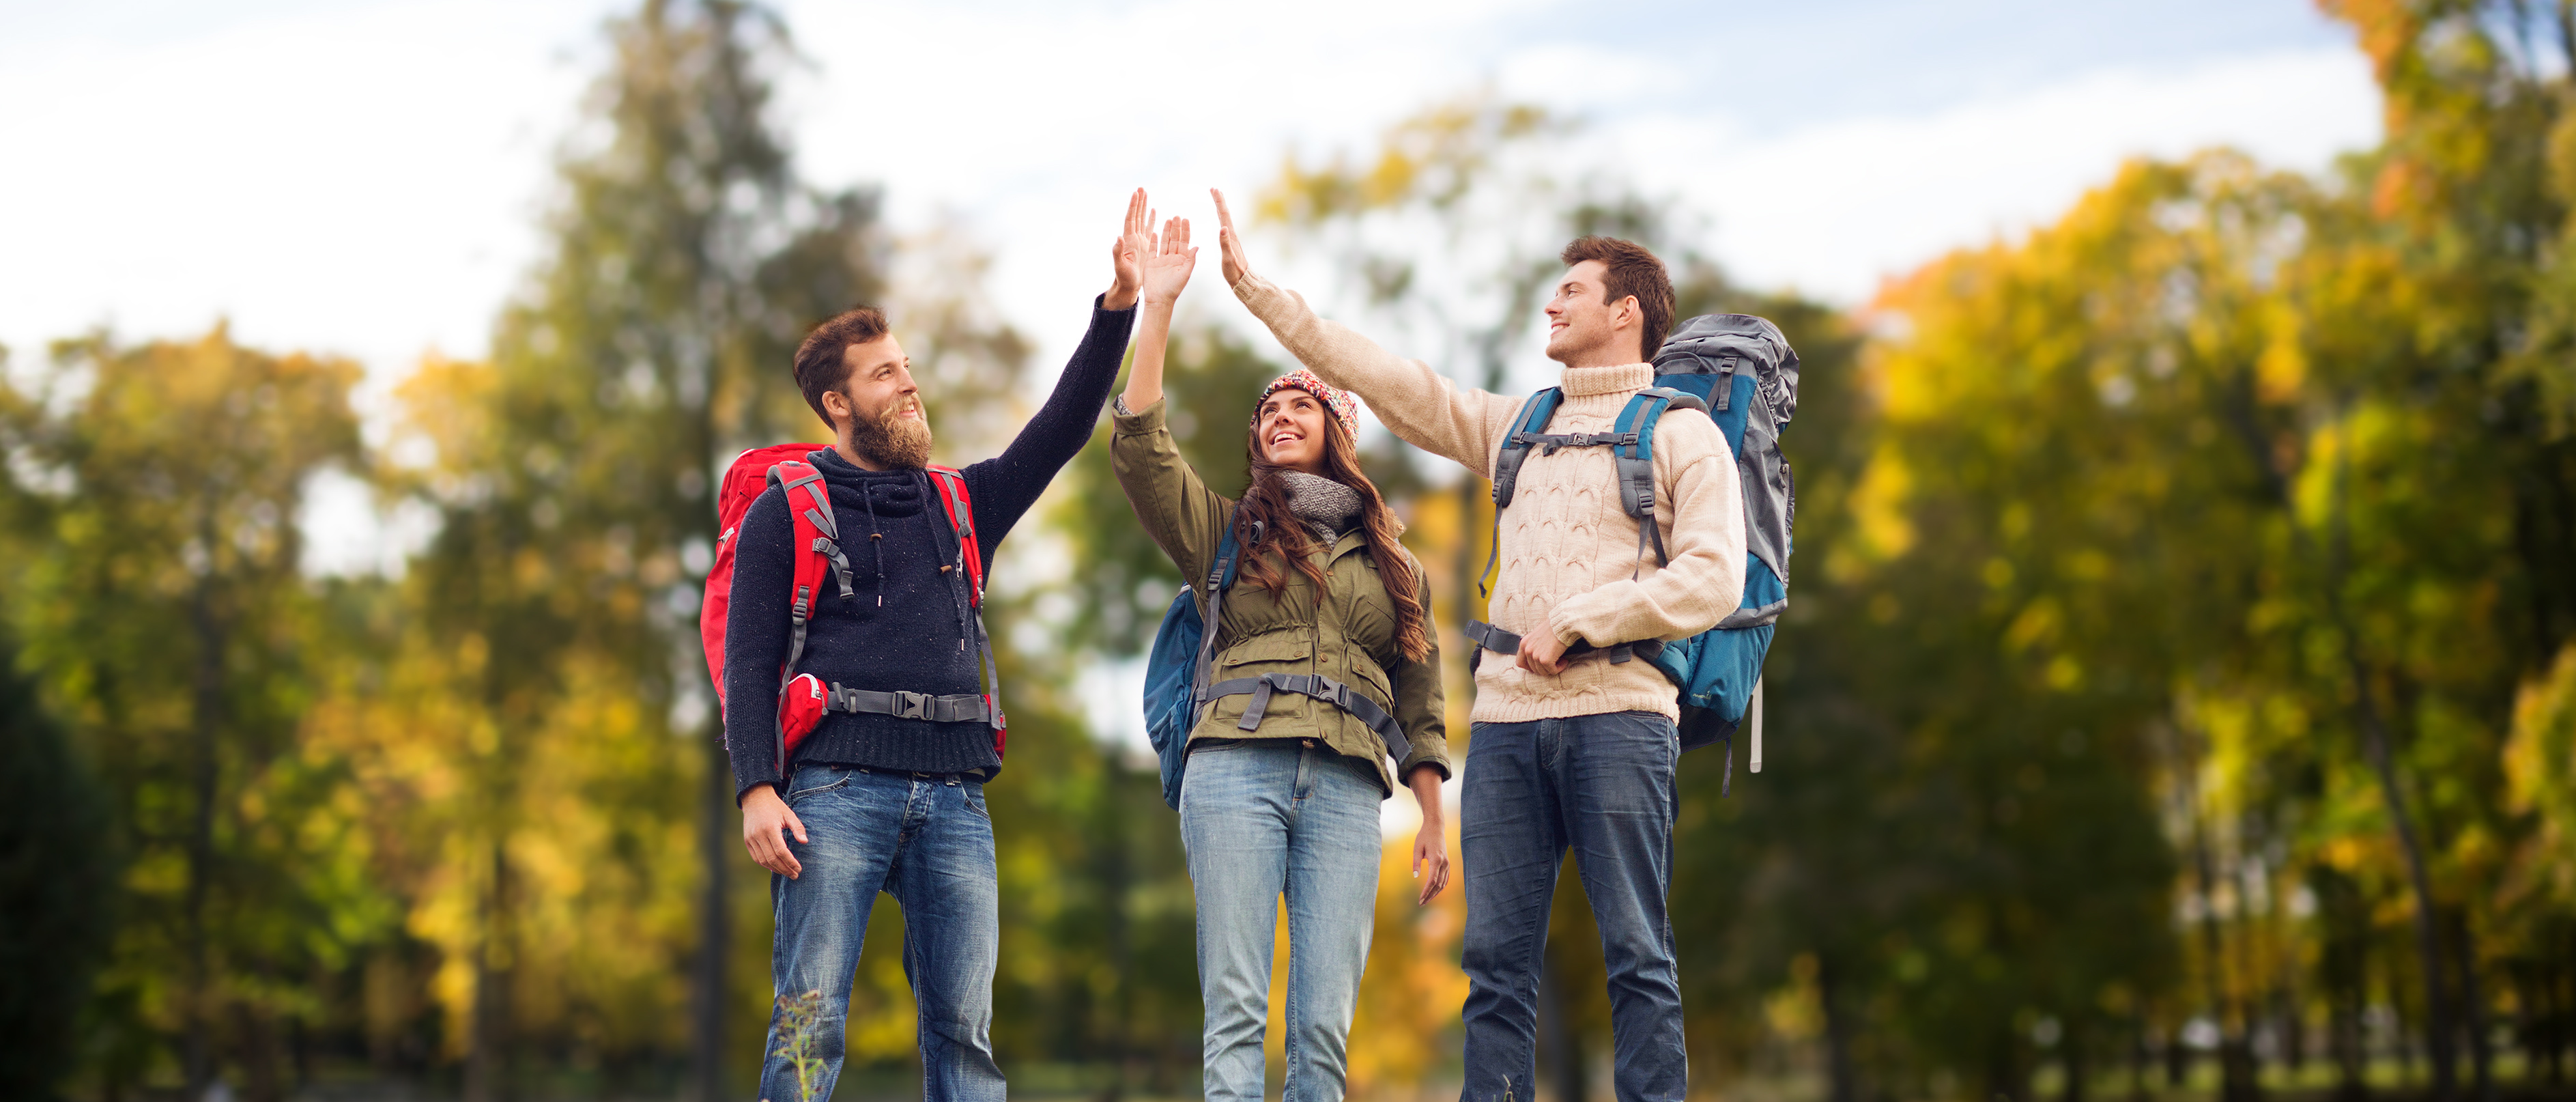 travel, tourism, hike, gesture and people concept - group of smiling friends with backpacks making high five over natural background